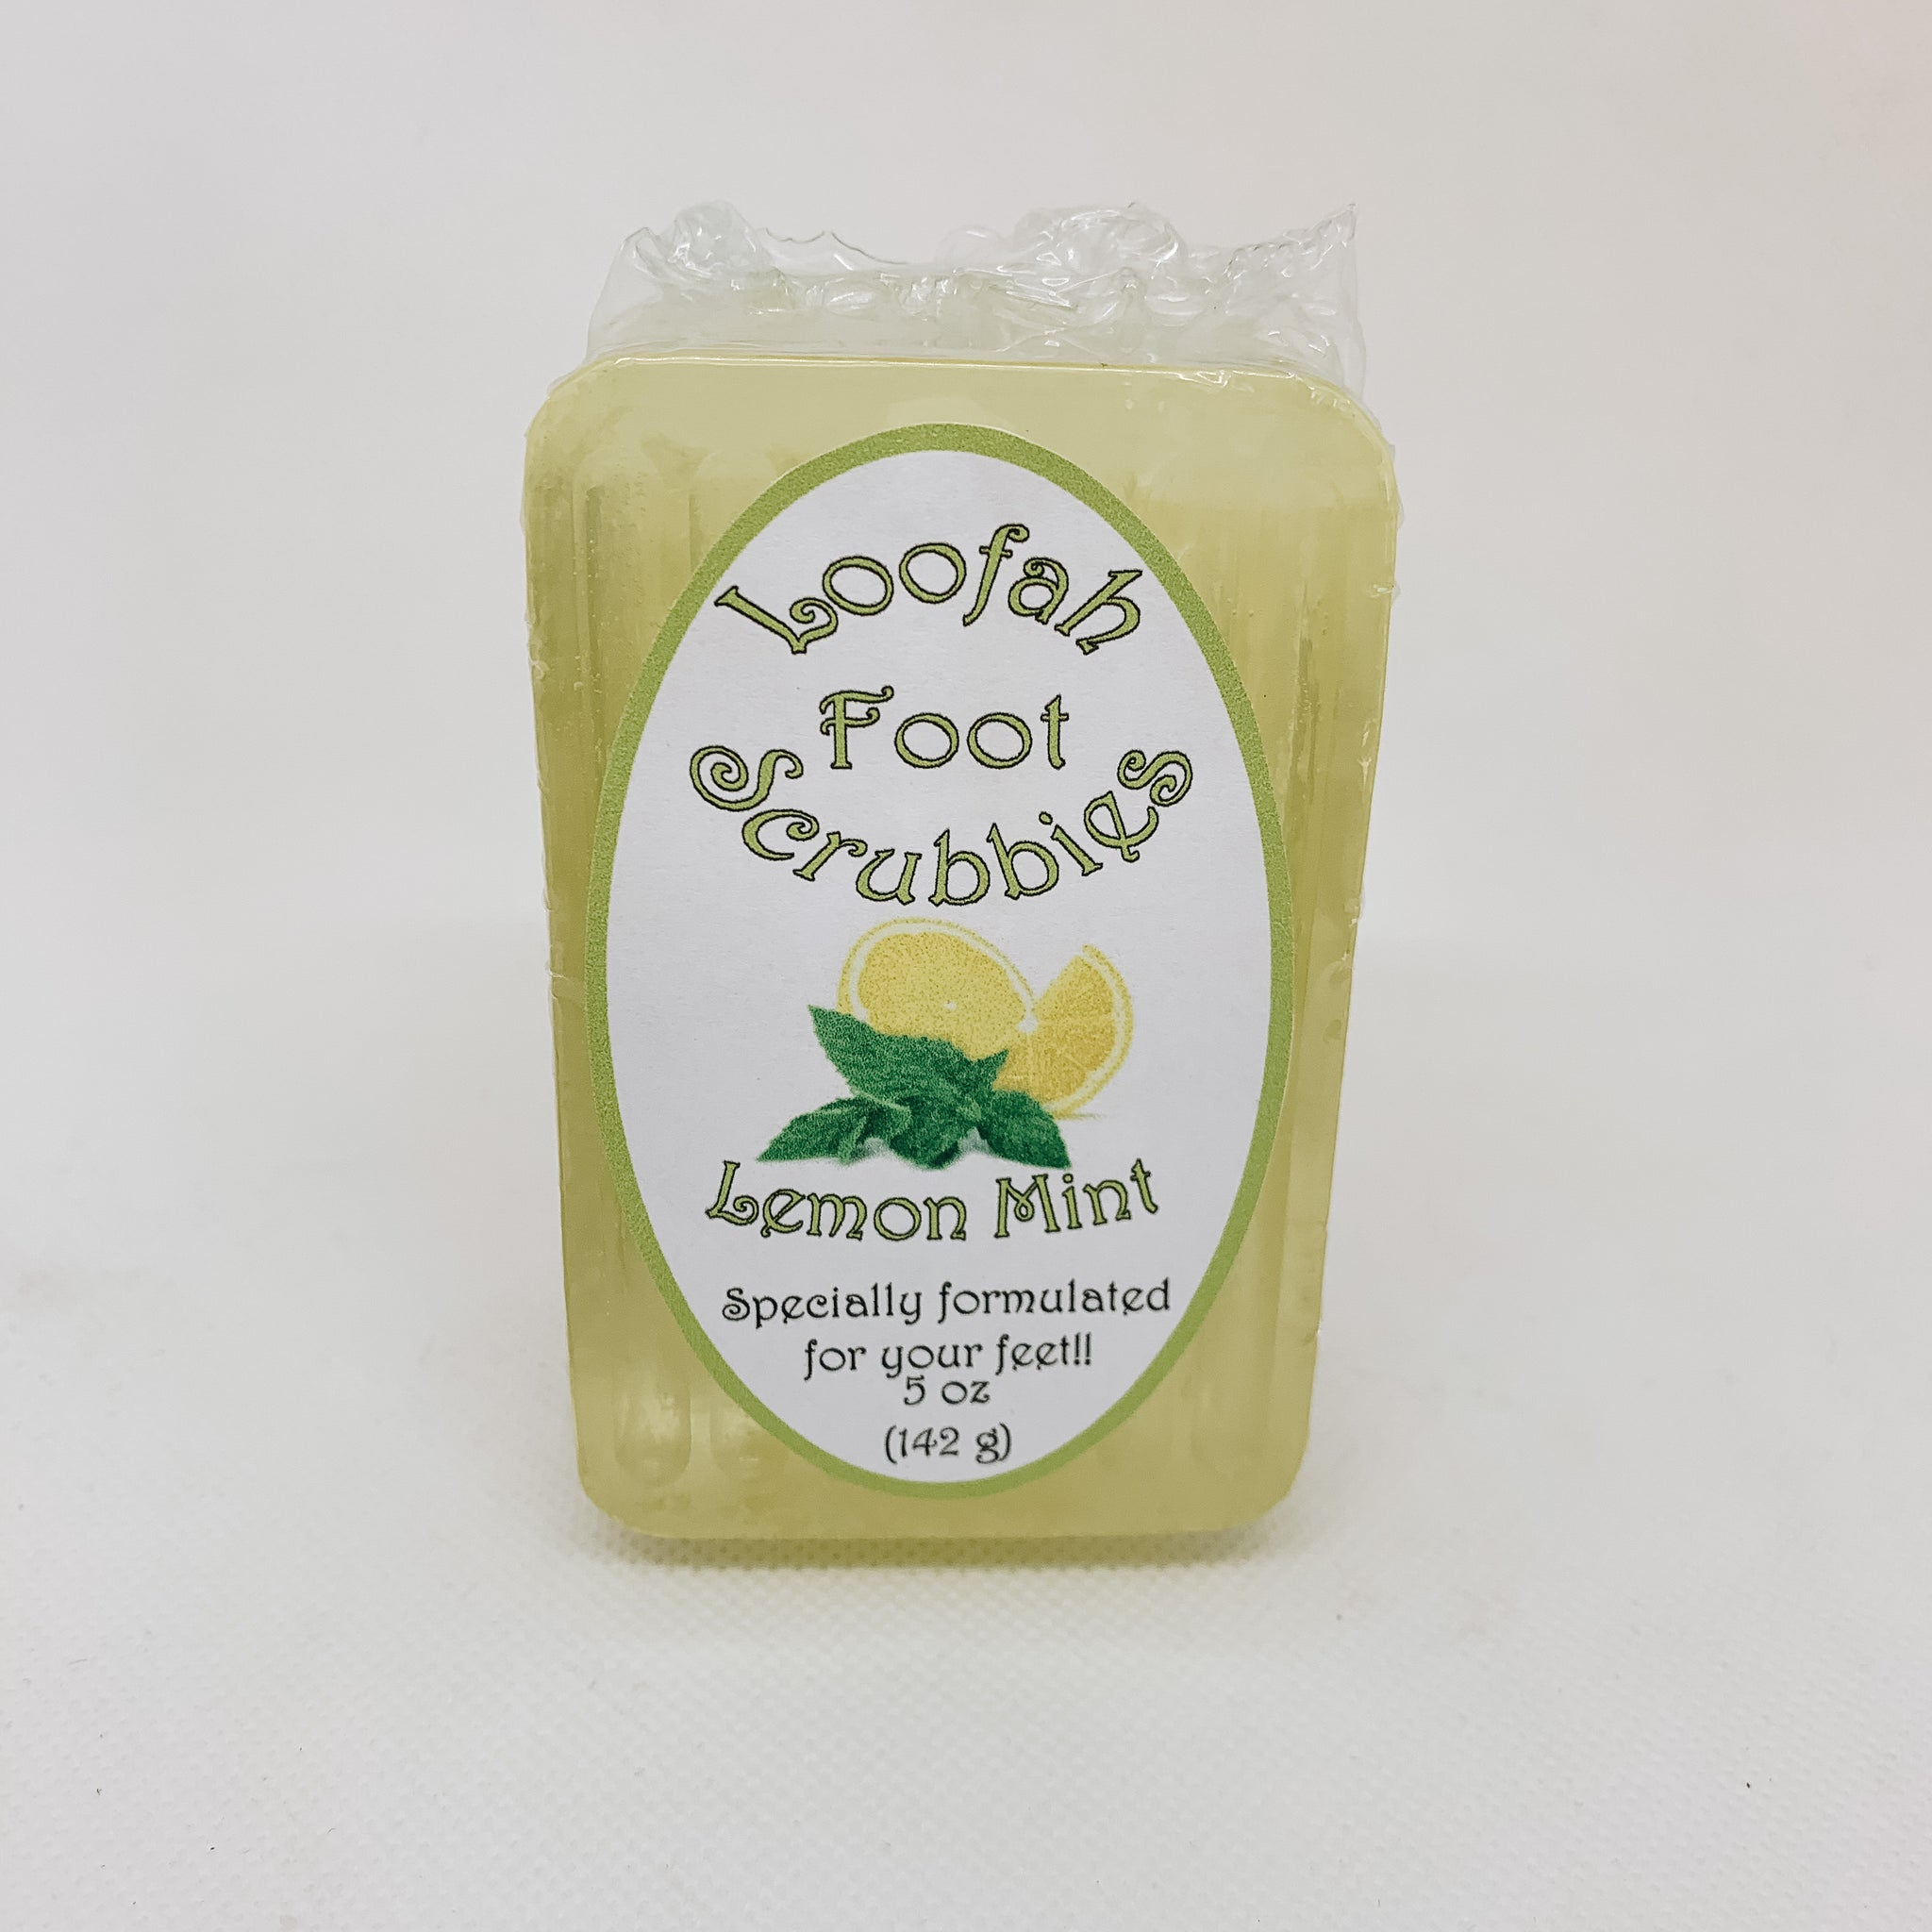 Loofah Foot Scrubbies